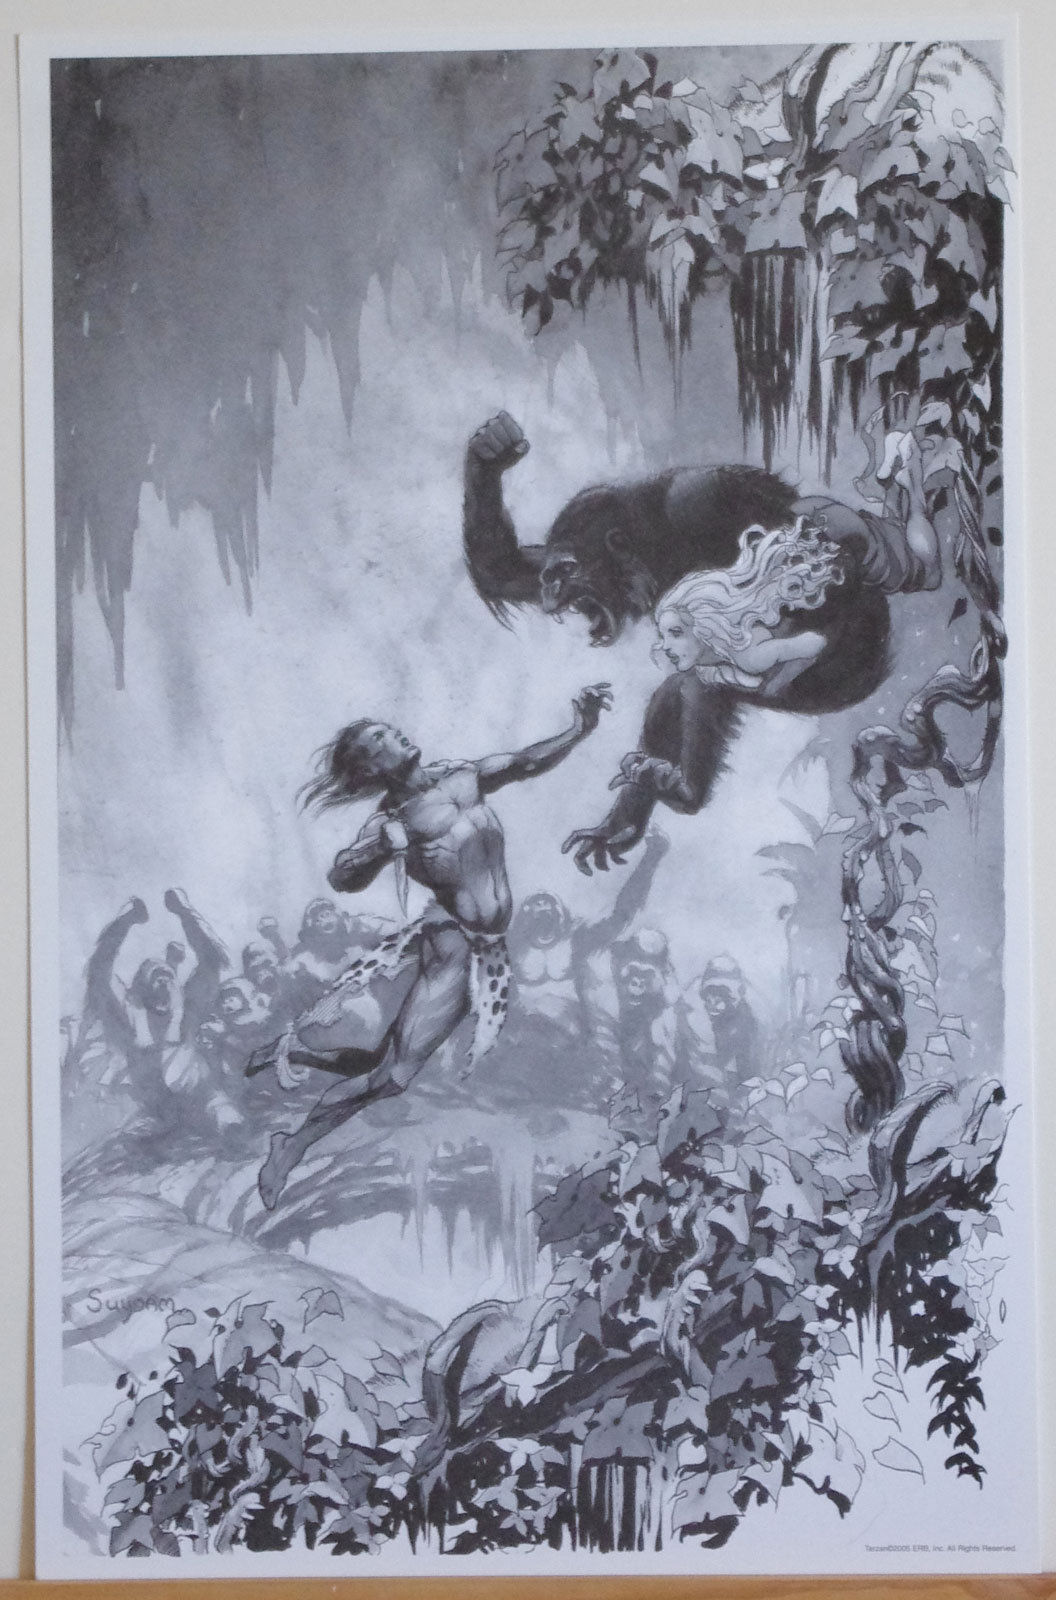 ARTHUR SUYDAM, TARZAN print, ERB, of the Apes, vs gorilla, Woman, 11